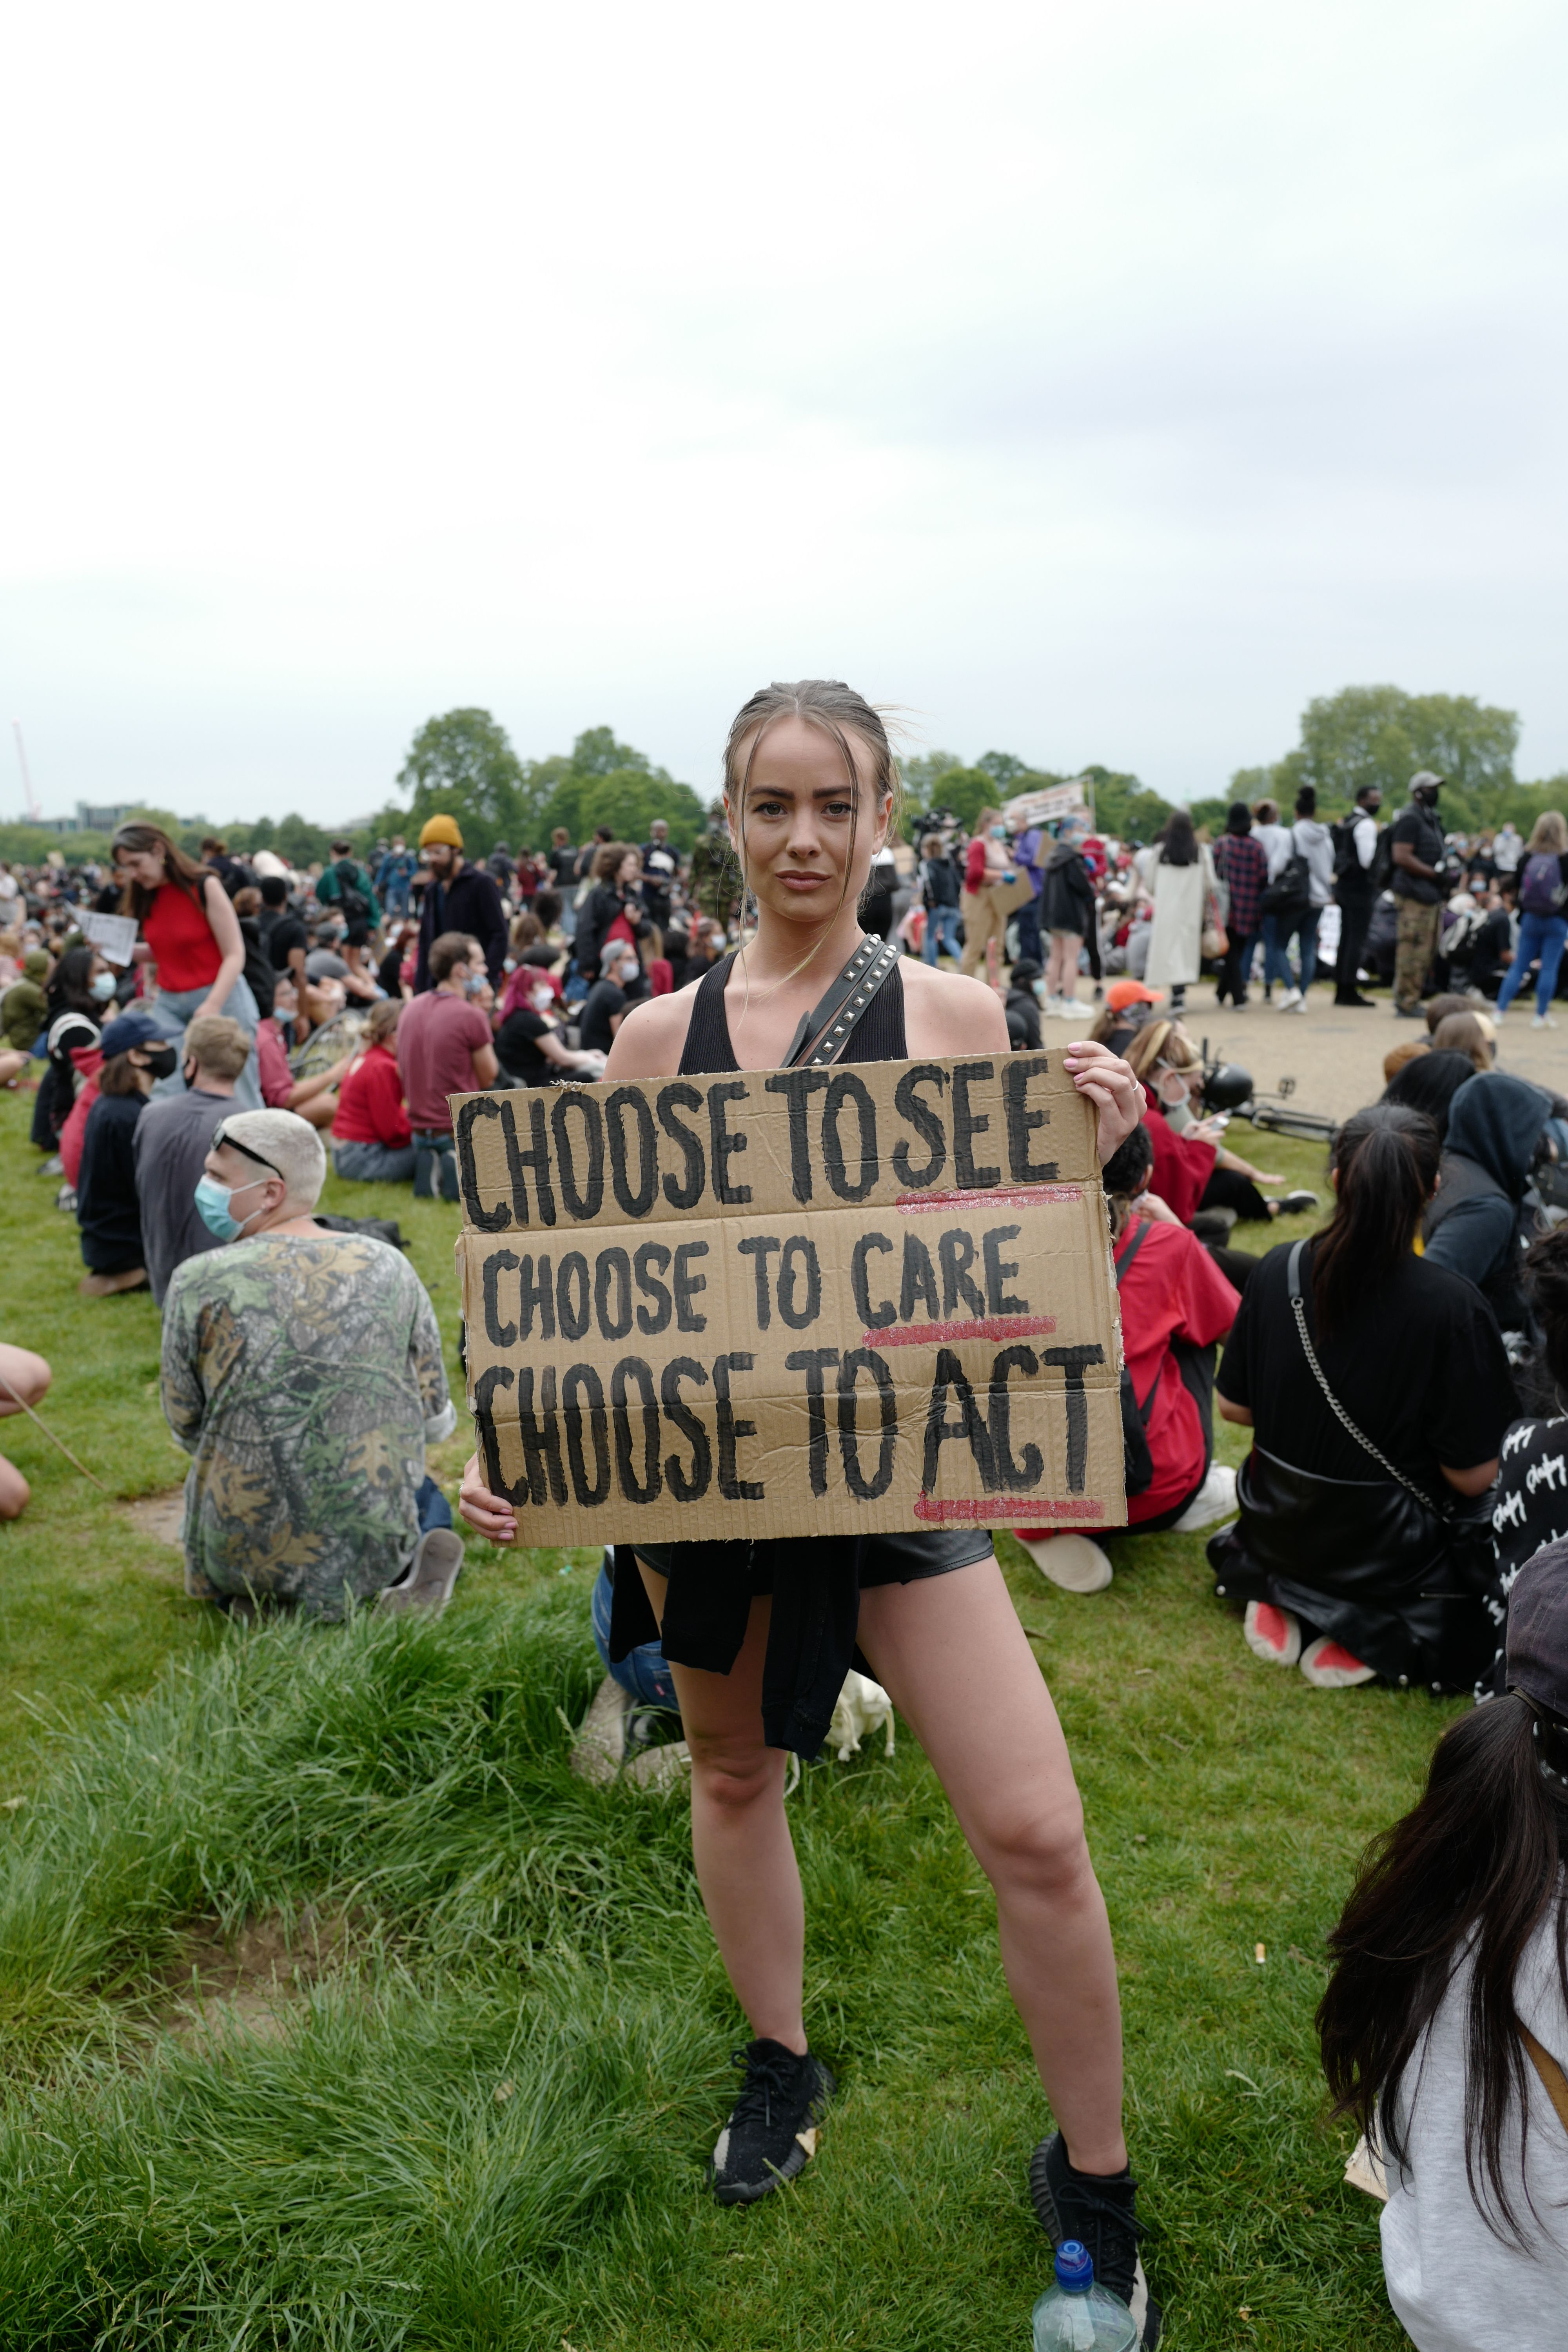 Protesters in Hyde Park during a 'Justice for Black Lives' demonstration. Protests have taken place across the United States and in cities around the world in response to the killing of George Floyd by police officers in Minneapolis on 25 May.Black Lives Matter protest, Hyde Park, London, UK - 03 Jun 2020